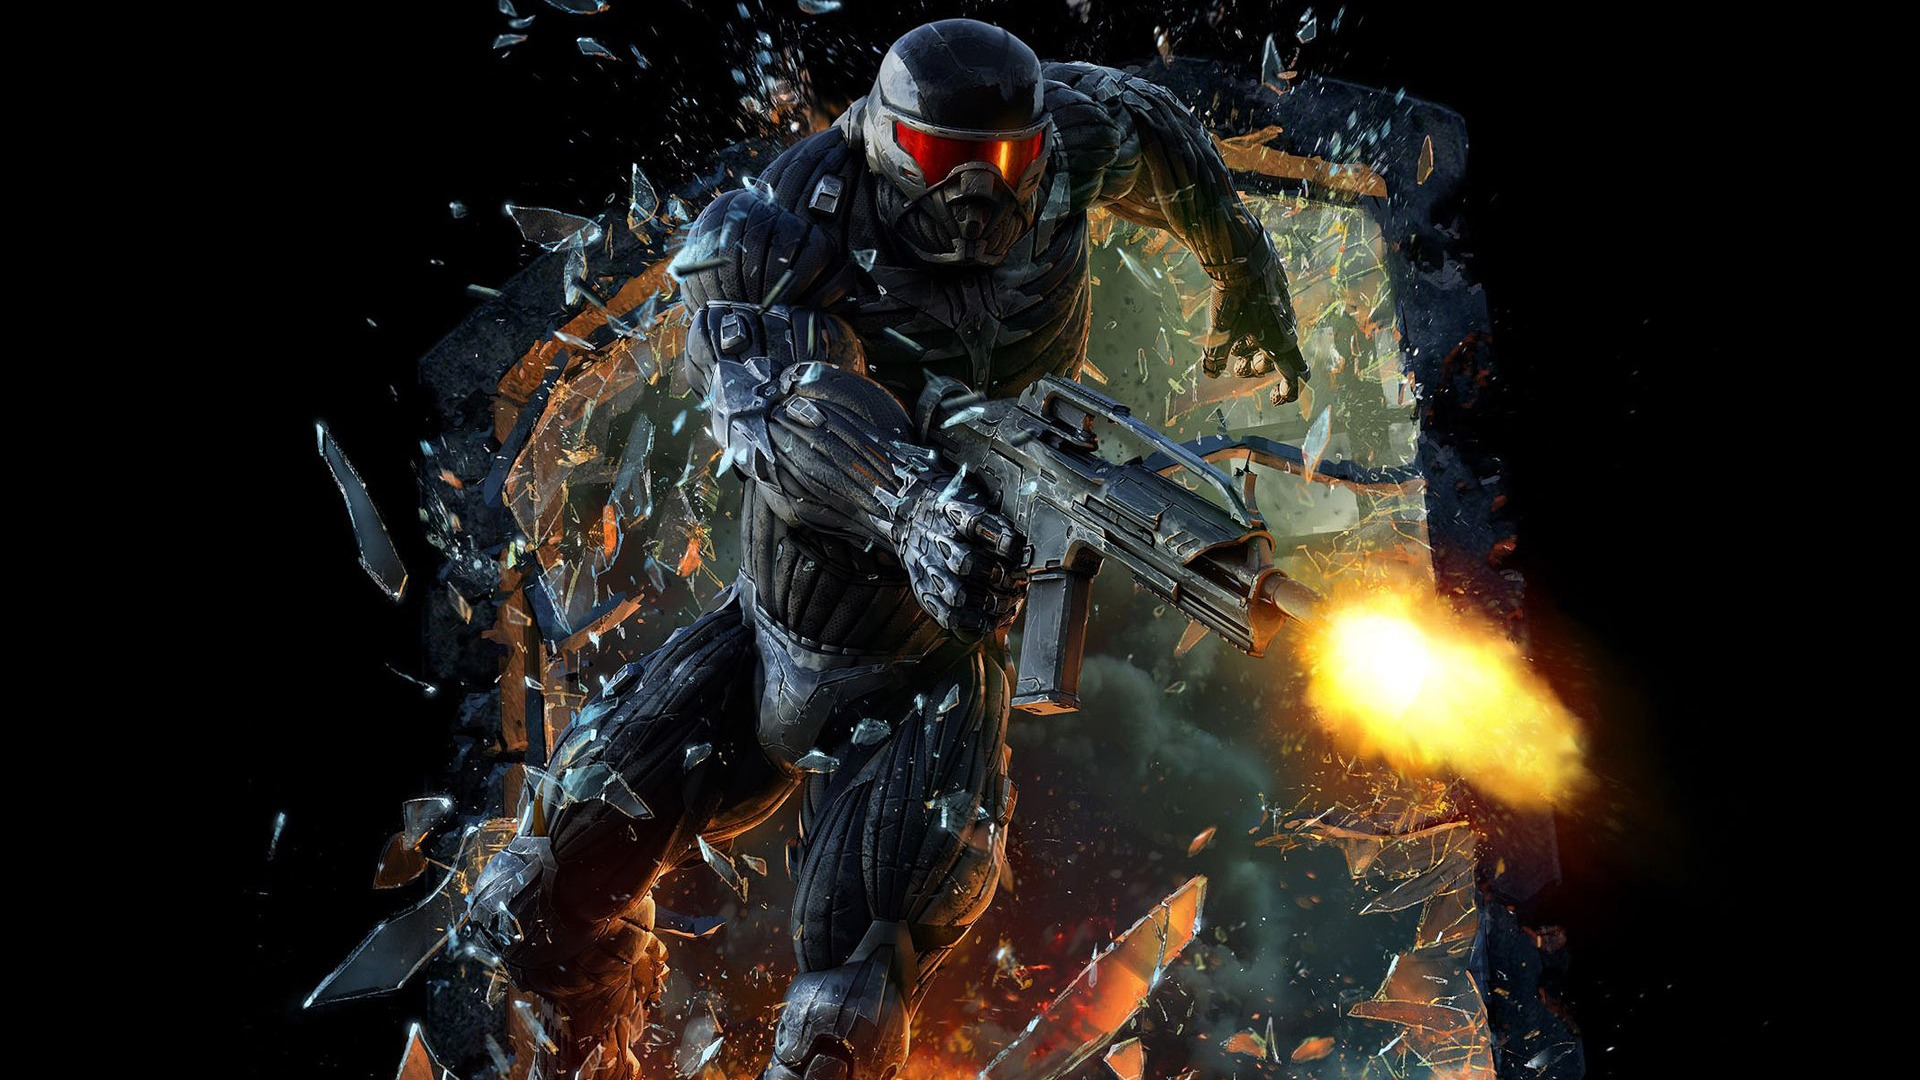 Games HD Wallpapers Games Wallpapers Game Wallpaper Desktop 40 1920x1080